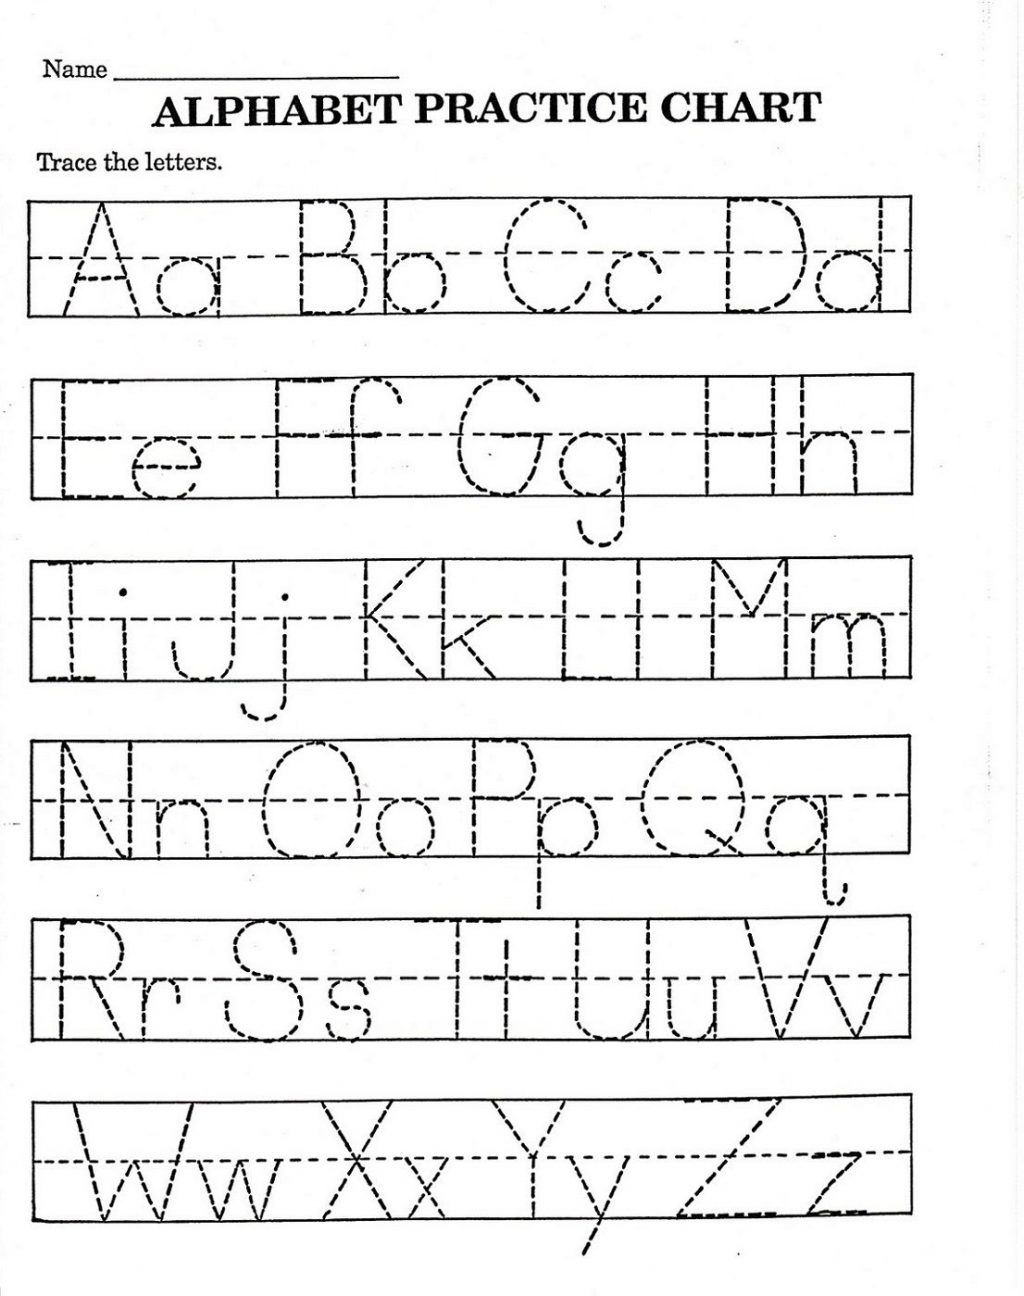 Worksheet ~ Alphabet Trace Sheets Printables Worksheets Free throughout Letter Tracing Download Free